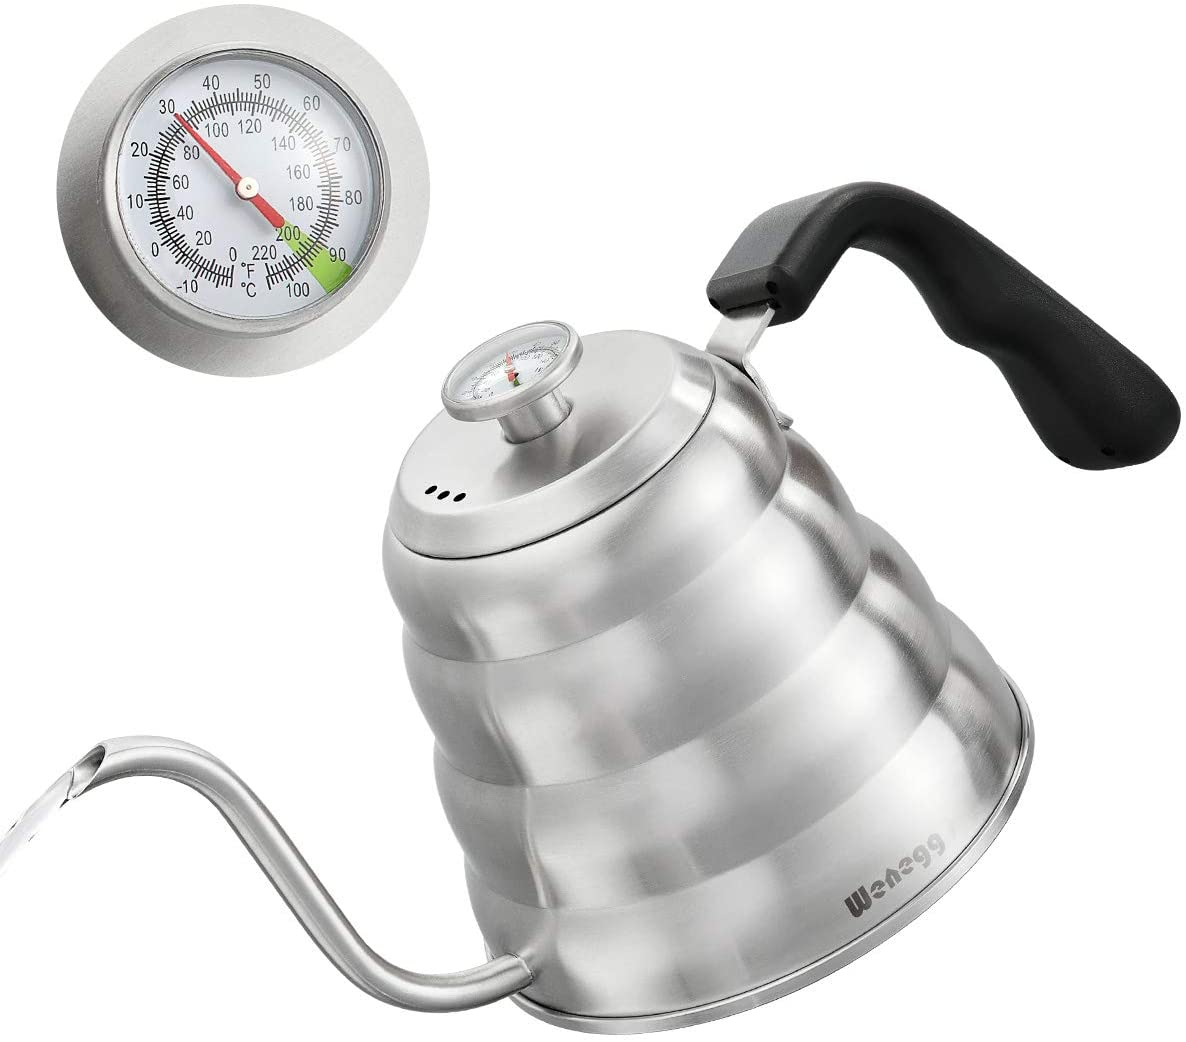 Best Tea Kettle For Gas Stoves 2021: Top 7 Recommendations For Tea Lovers Out There 3 #cookymom